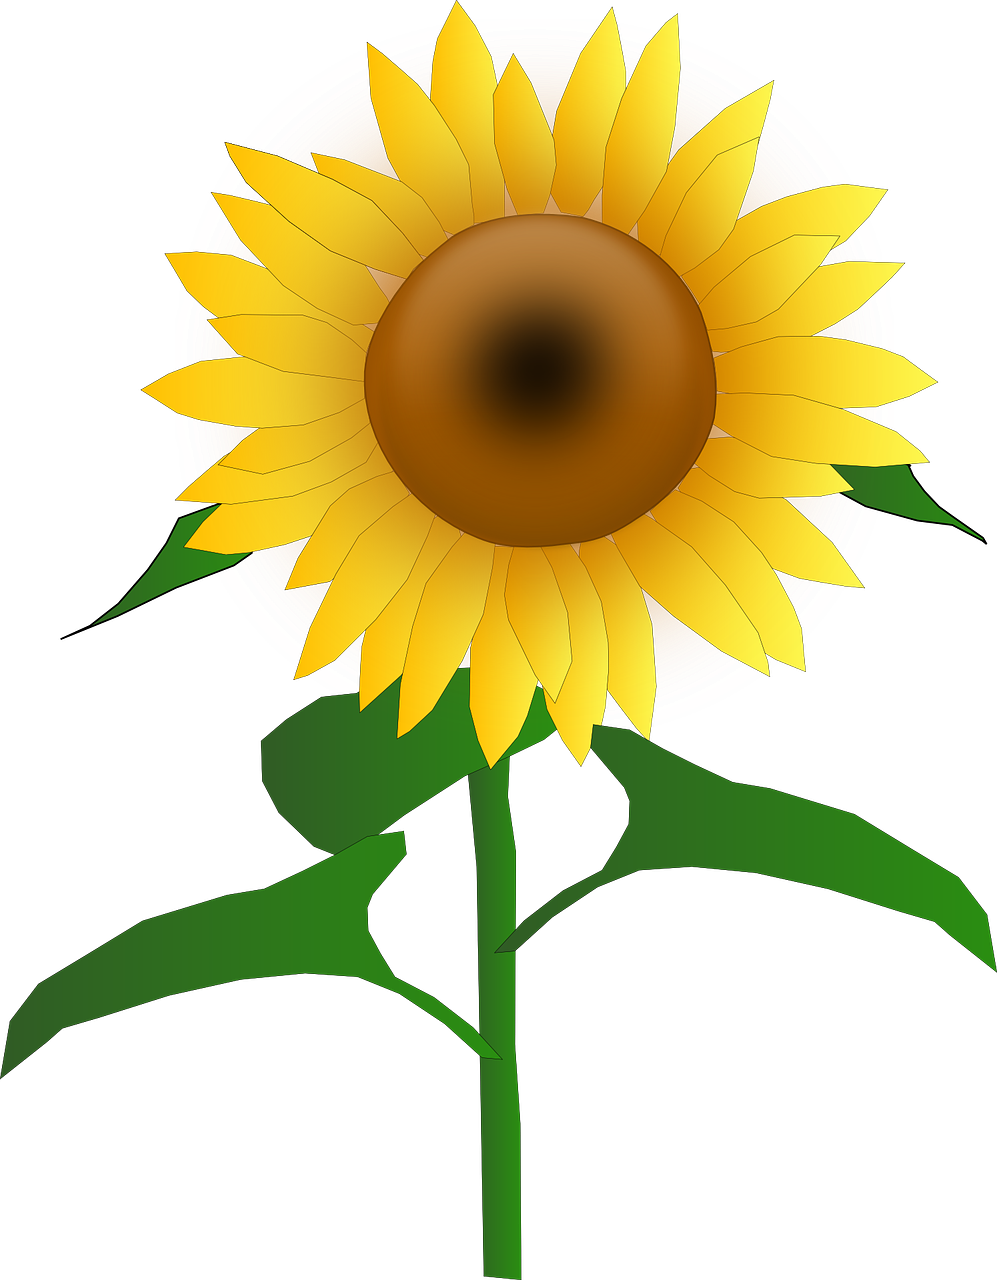 Sunflower vector png. Blooms blossom golden yellow